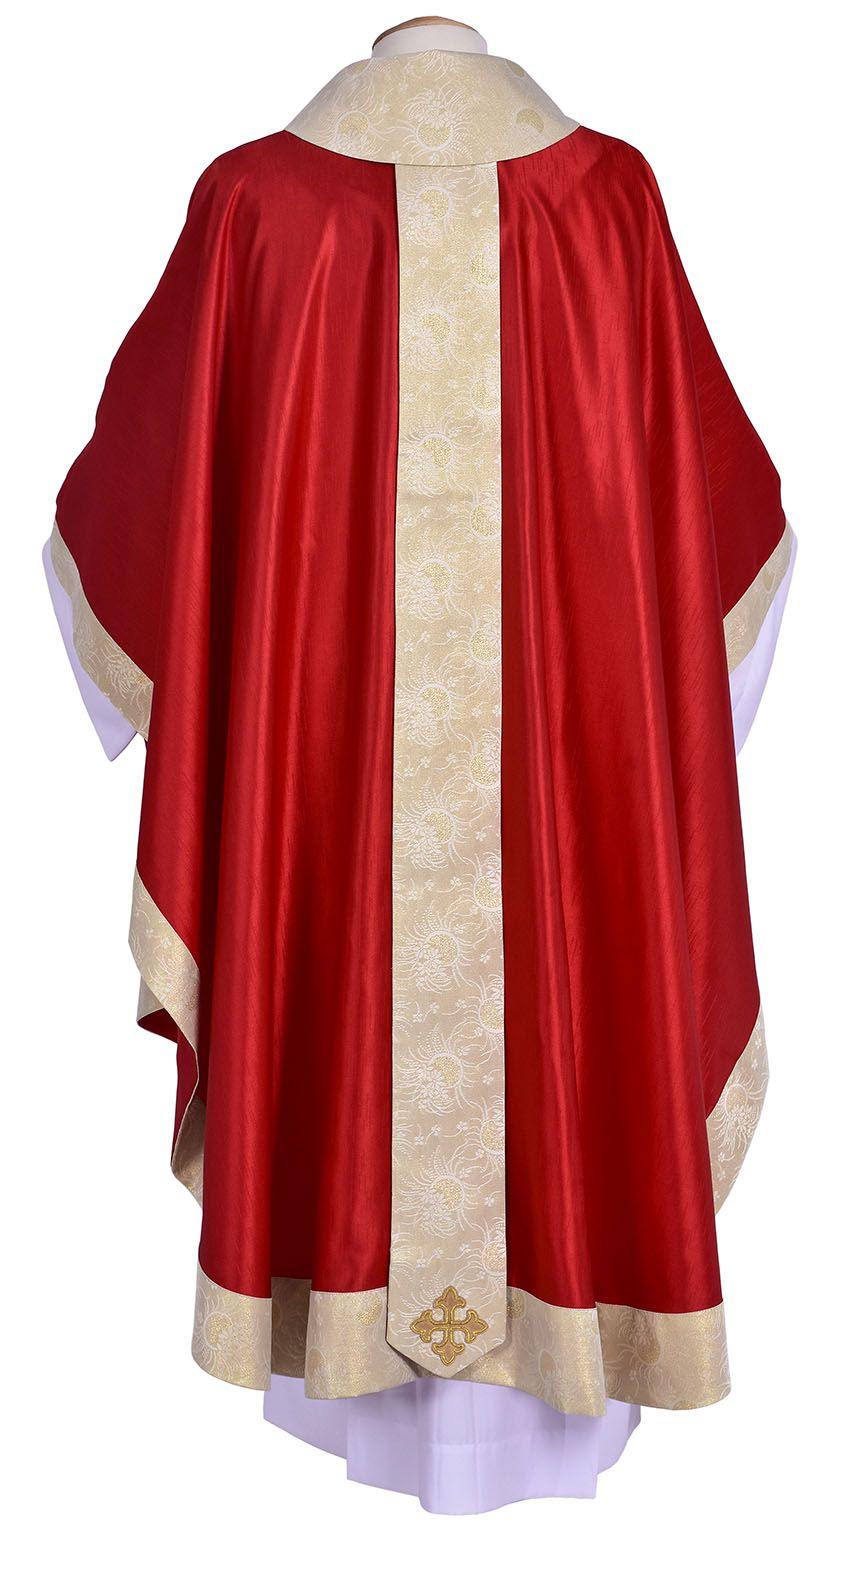 Gabriel Angel Chasuble CS076